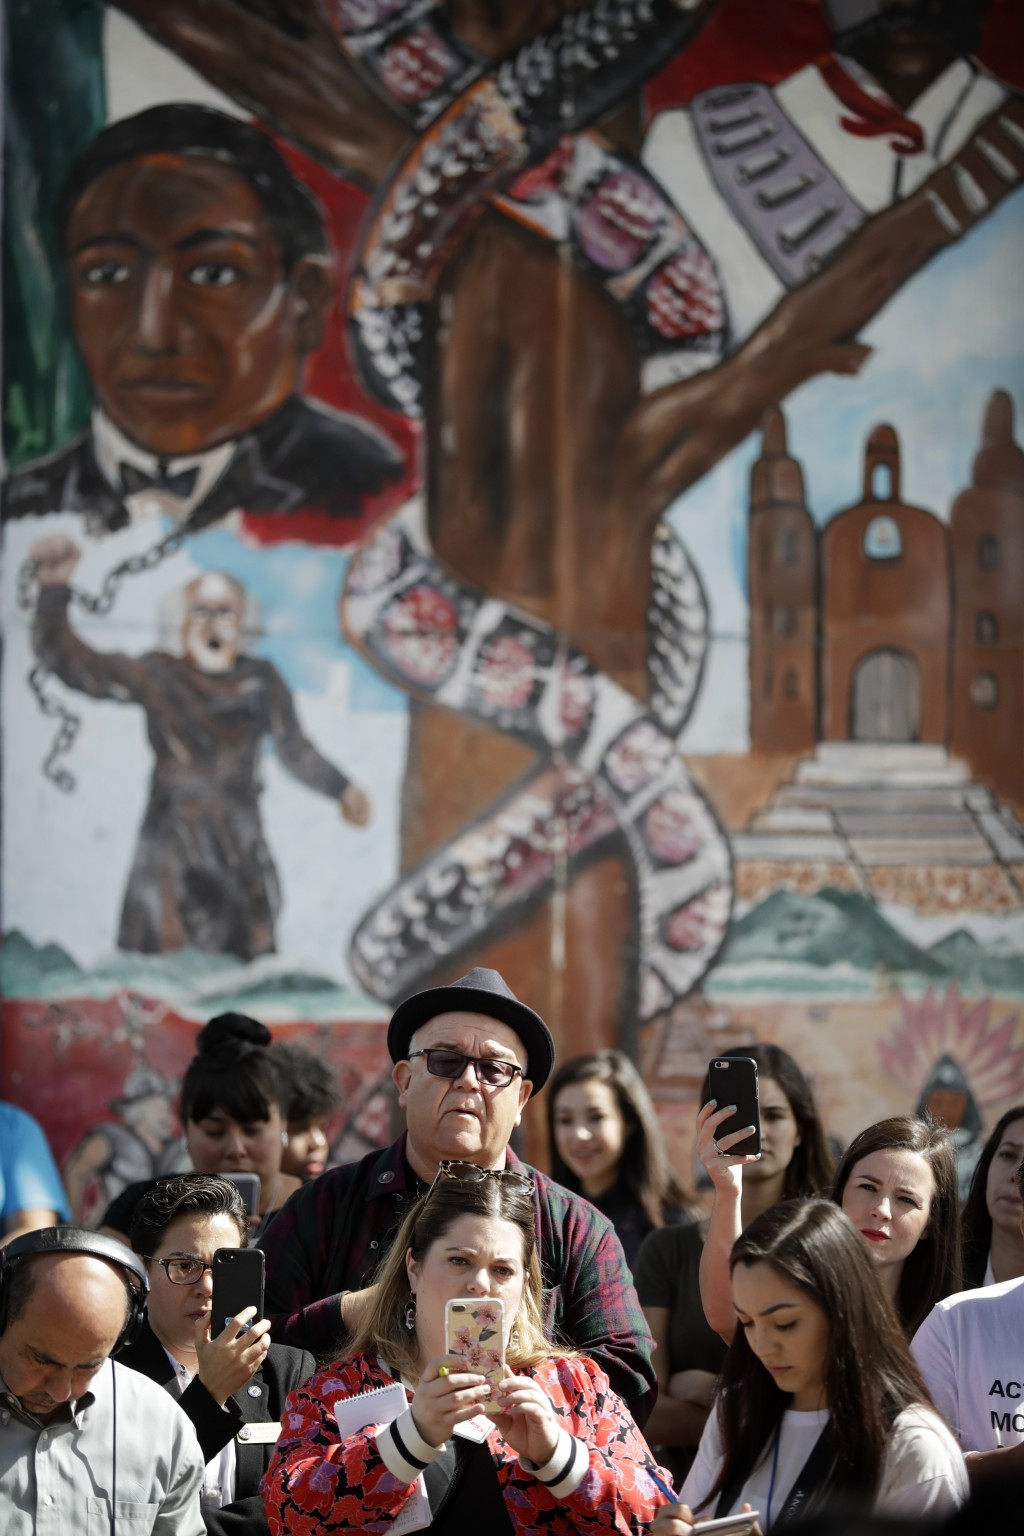 People look on in front of a mural depicting heroes of the Mexican revolution during a rally against a scheduled upcoming visit to the area by Preside